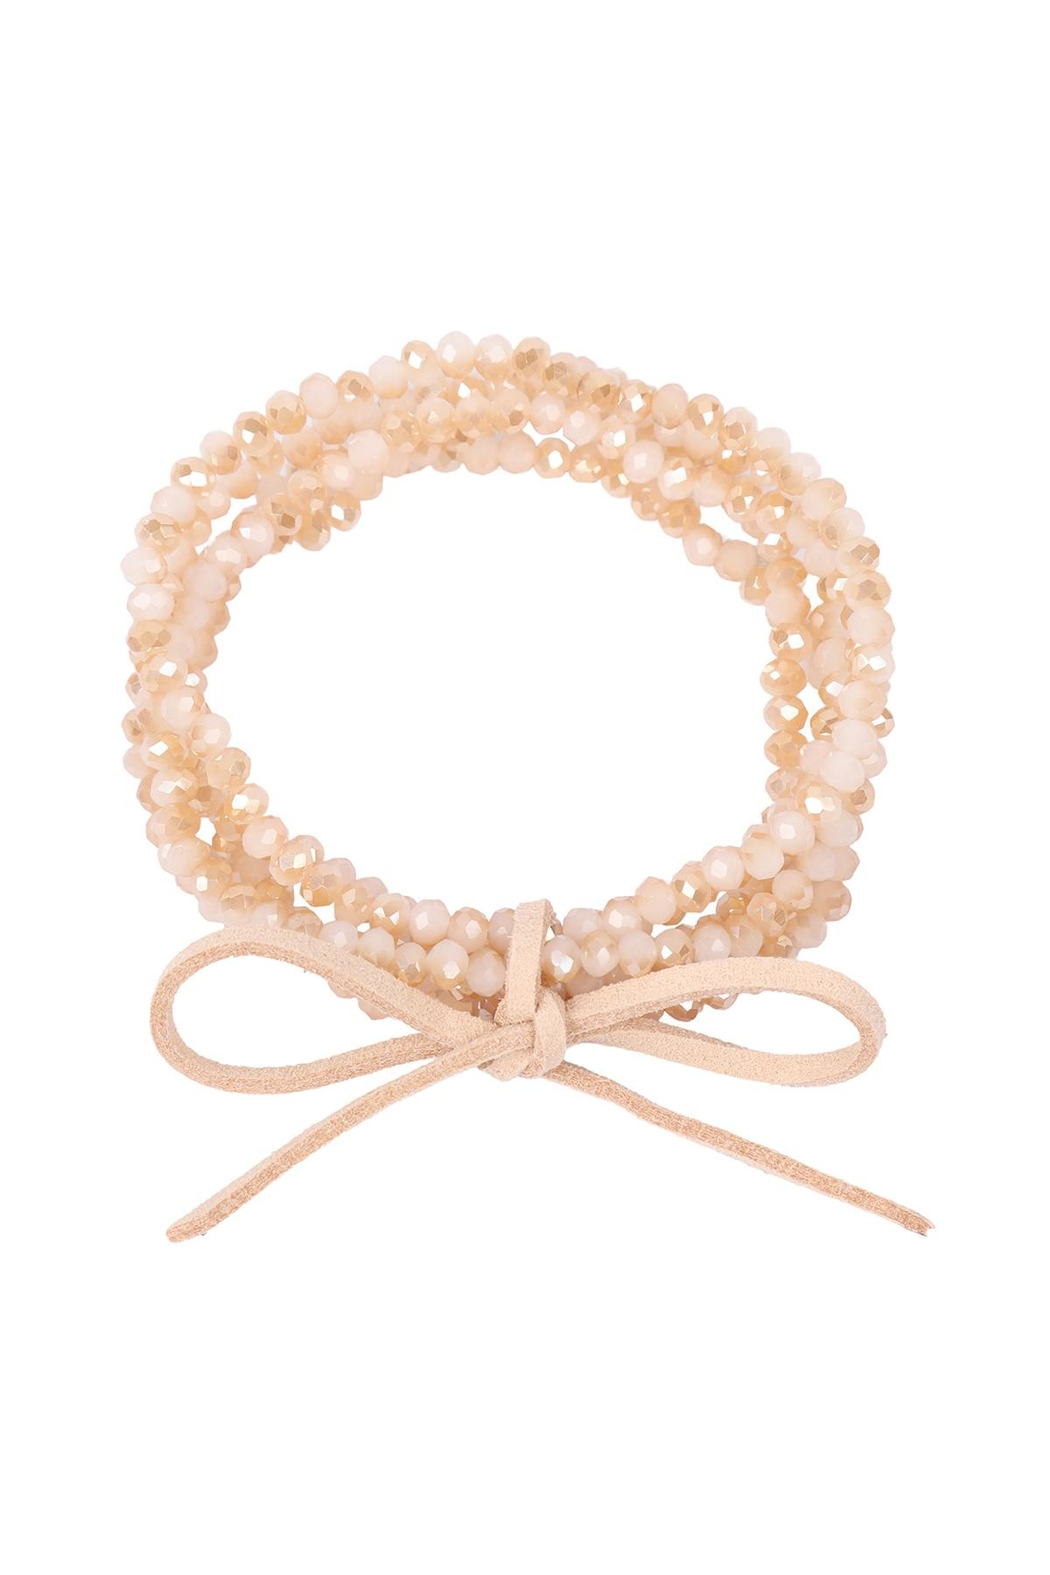 Riah Fashion Two Tone Beaded Bracelet With Leather Ribbon Charm - Front Cropped Image